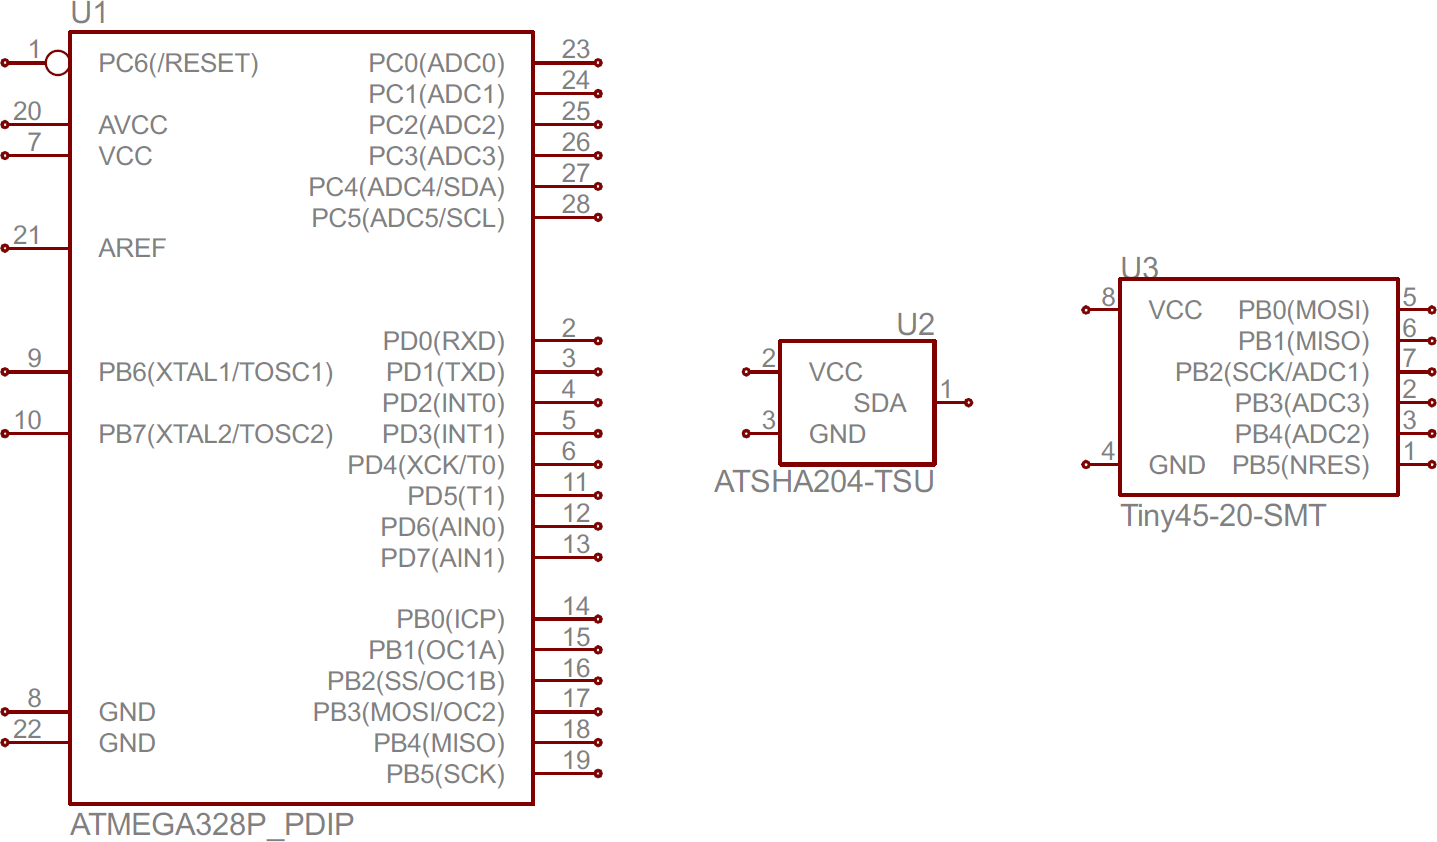 How To Read A Schematic Diy Complete Electrical Wiring Diagram Get Free Image About Atmega328 Atsha204 And Attiny45 Ic Symbols